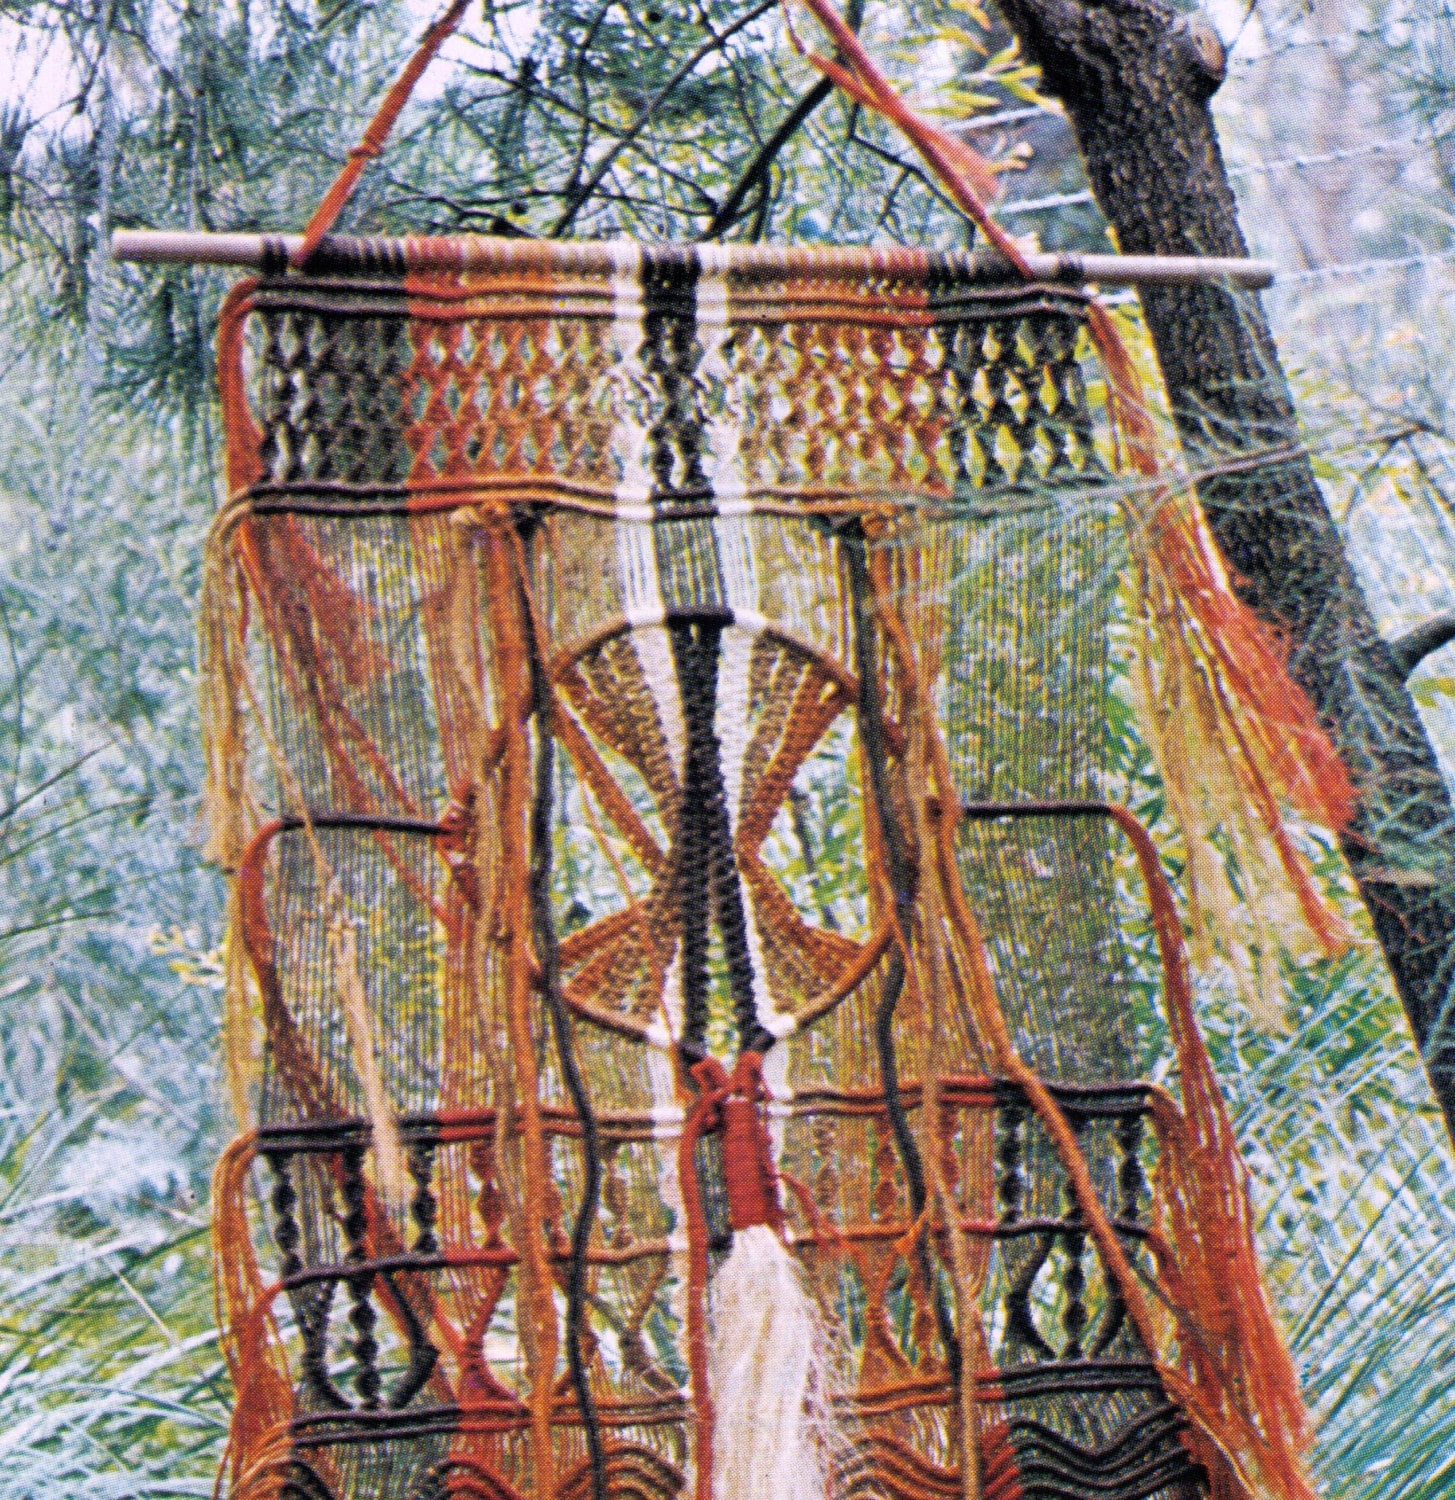 VINtAGE MACRAME WaLL Hanging LaRge DREAMCaTcher STyLe ...